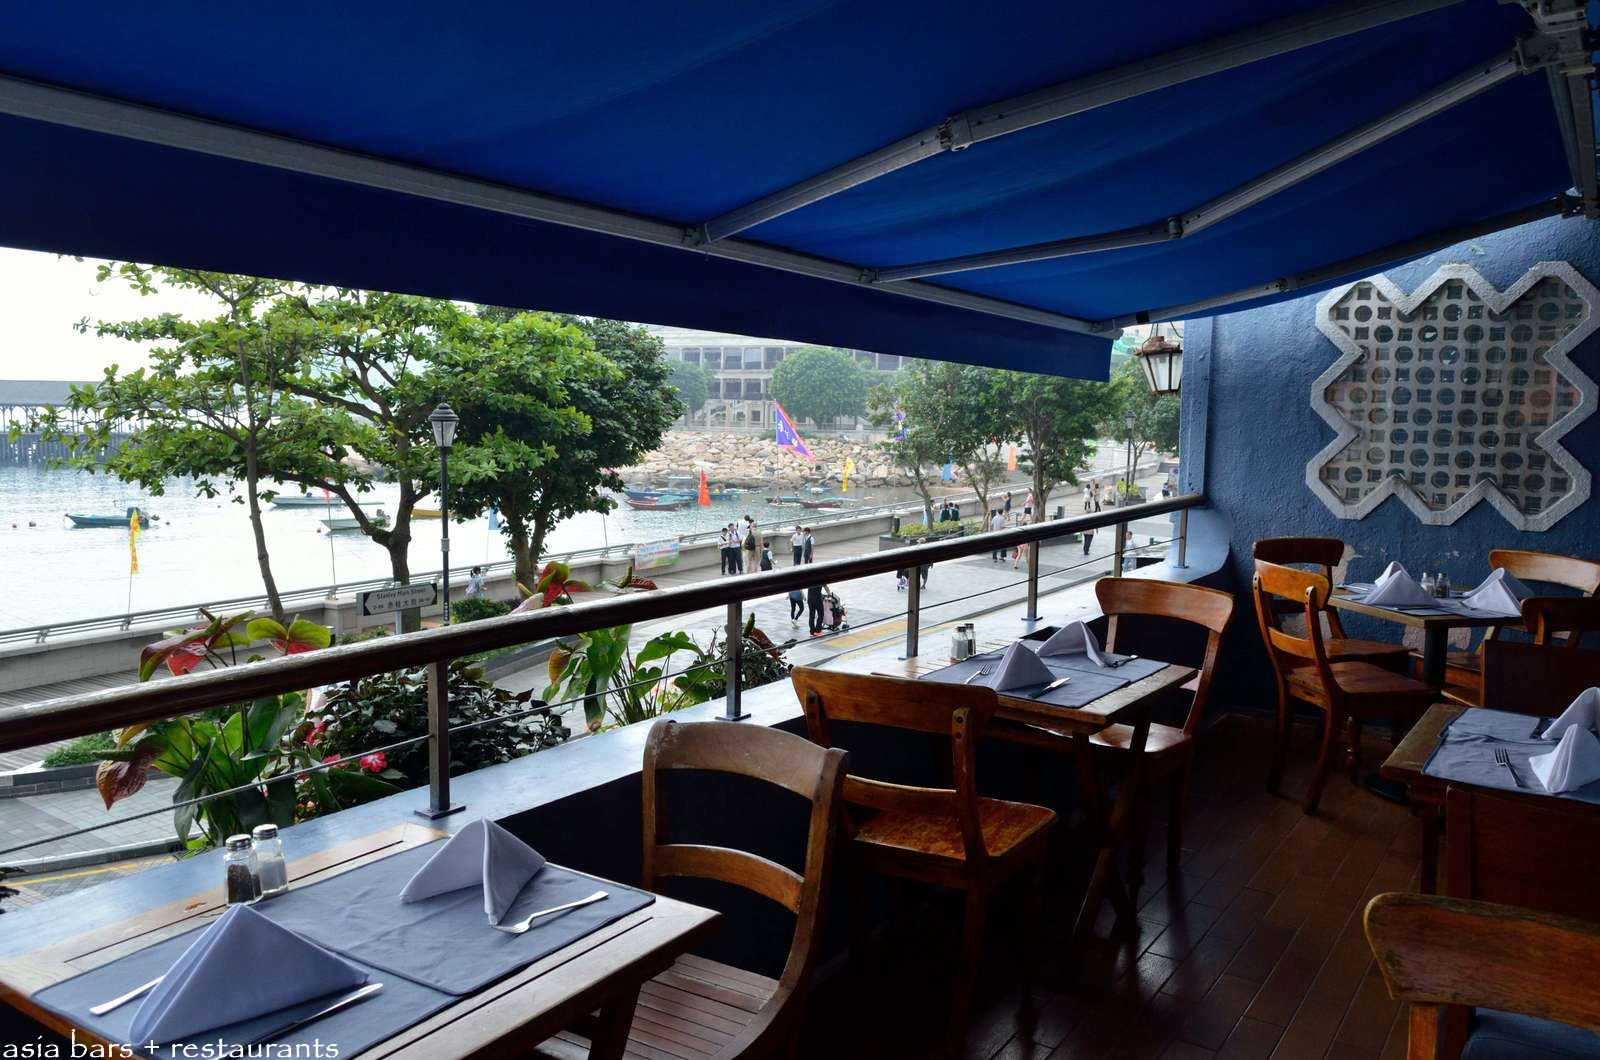 Delightful Seafood Restaurant On Hong Kong Island With Expansive Water Views Over Stanley Bay Boathouse